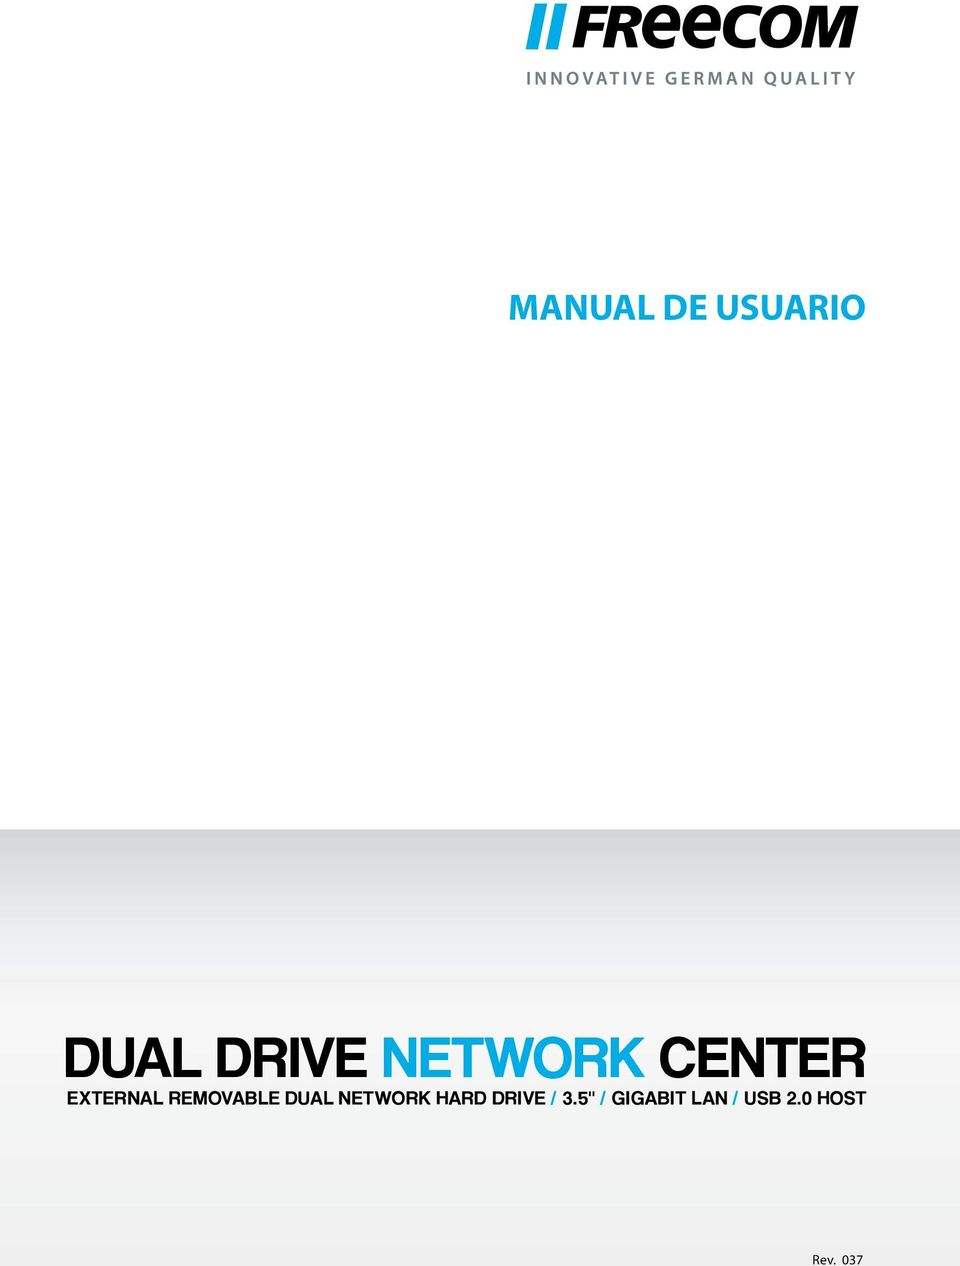 REMOVABLE DUAL NETWORK HARD